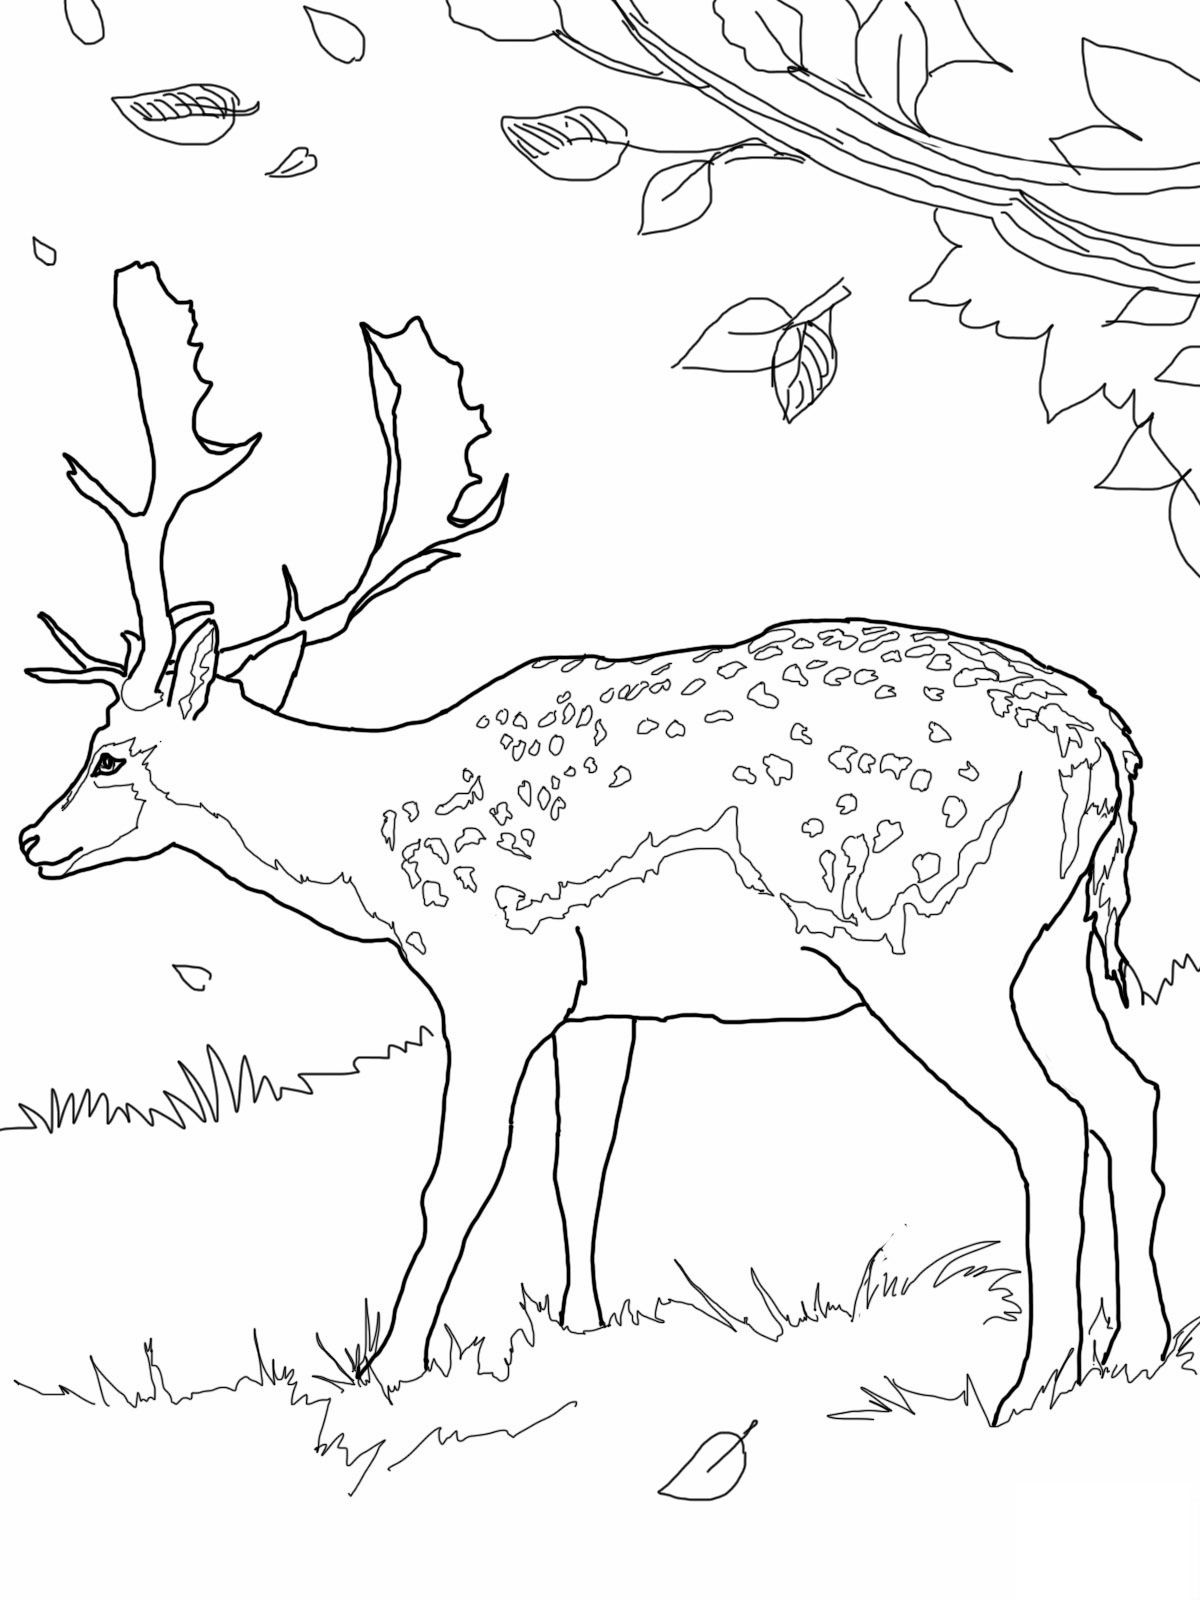 Free Printable Deer Coloring Pages For Kids Deer Coloring Pages Animal Coloring Pages Free Coloring Pages